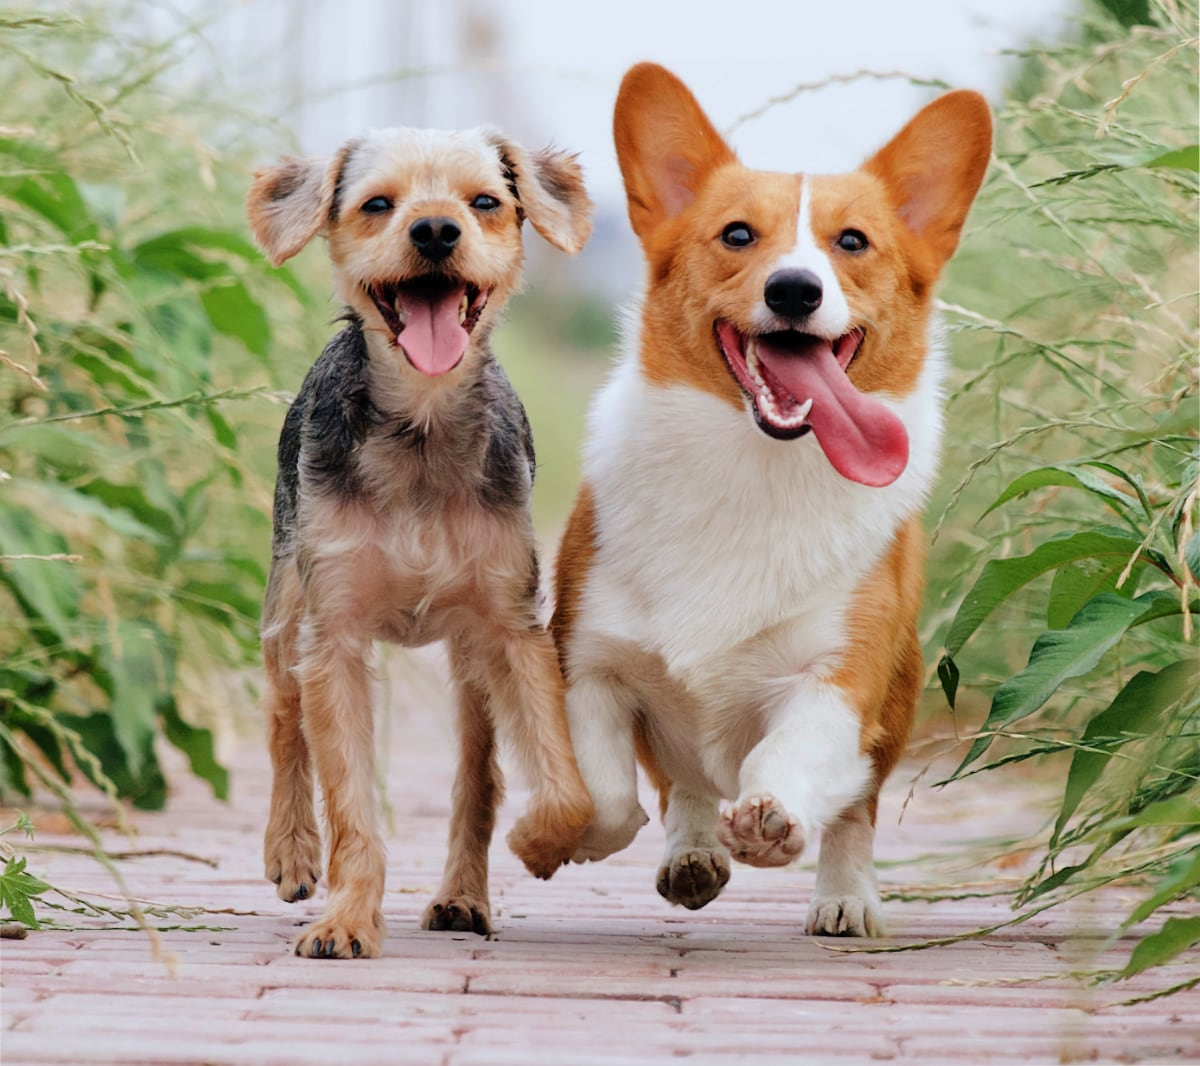 Two happy active dogs running